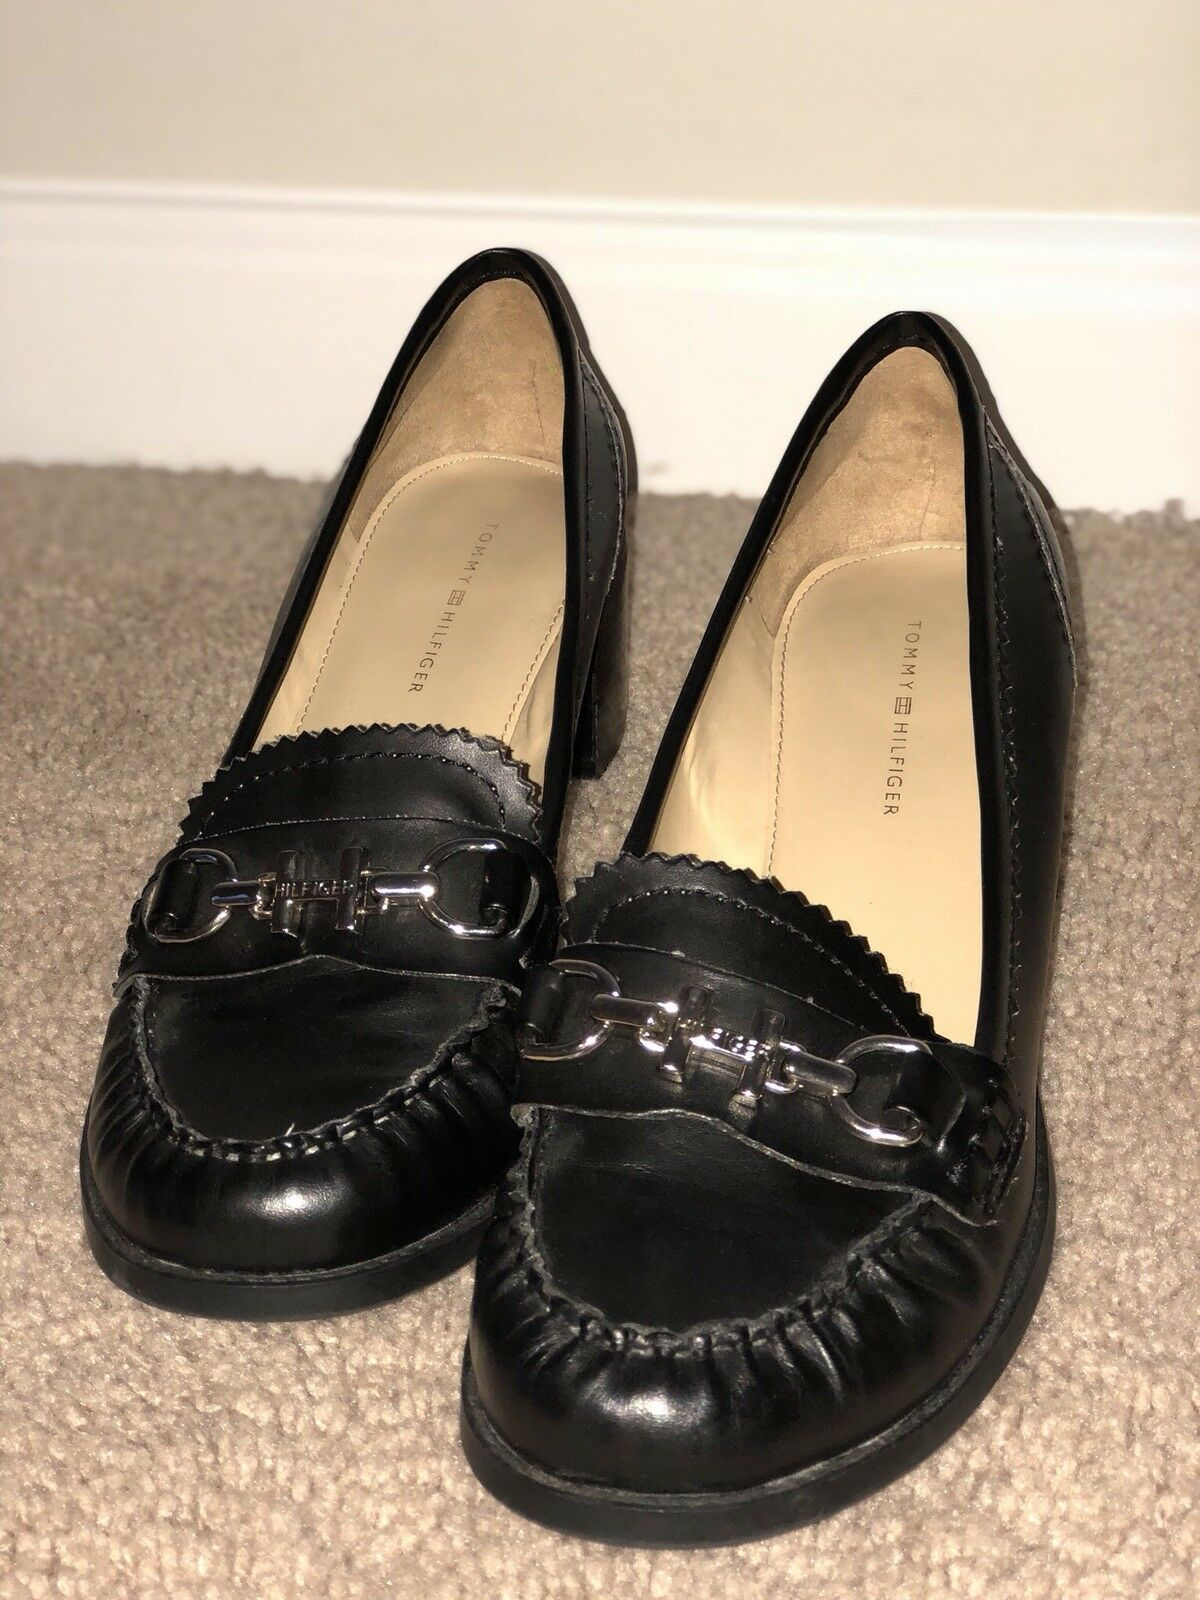 Women 7 Tommy Hilfiger loafers size 7 Women leather 2e75e2